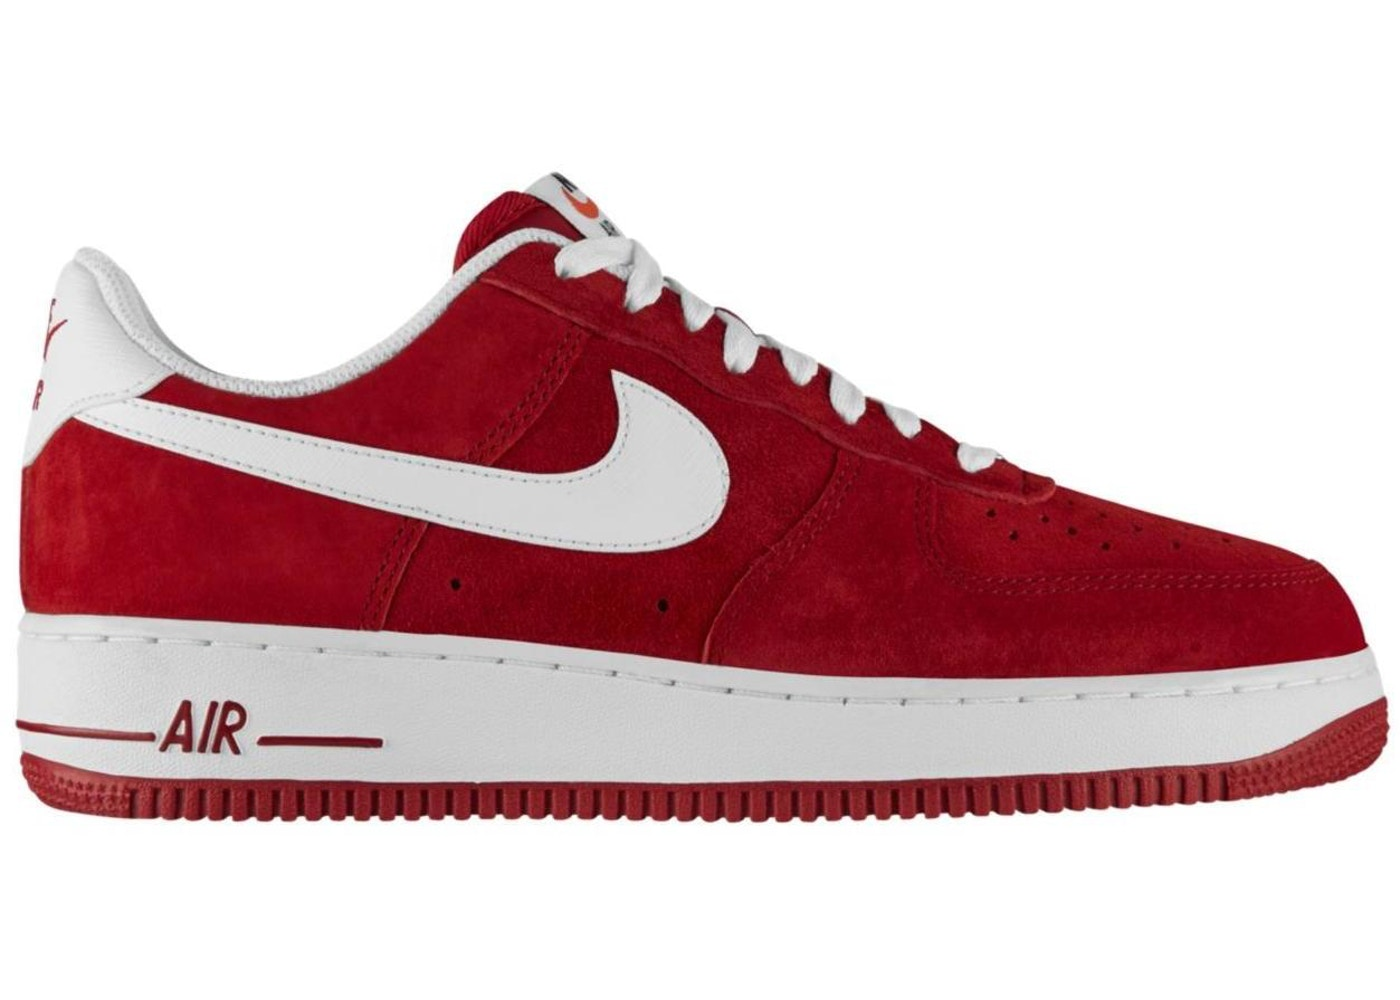 best service 41c81 a1d40 Air Force 1 Low Gym Red White - 488298-620